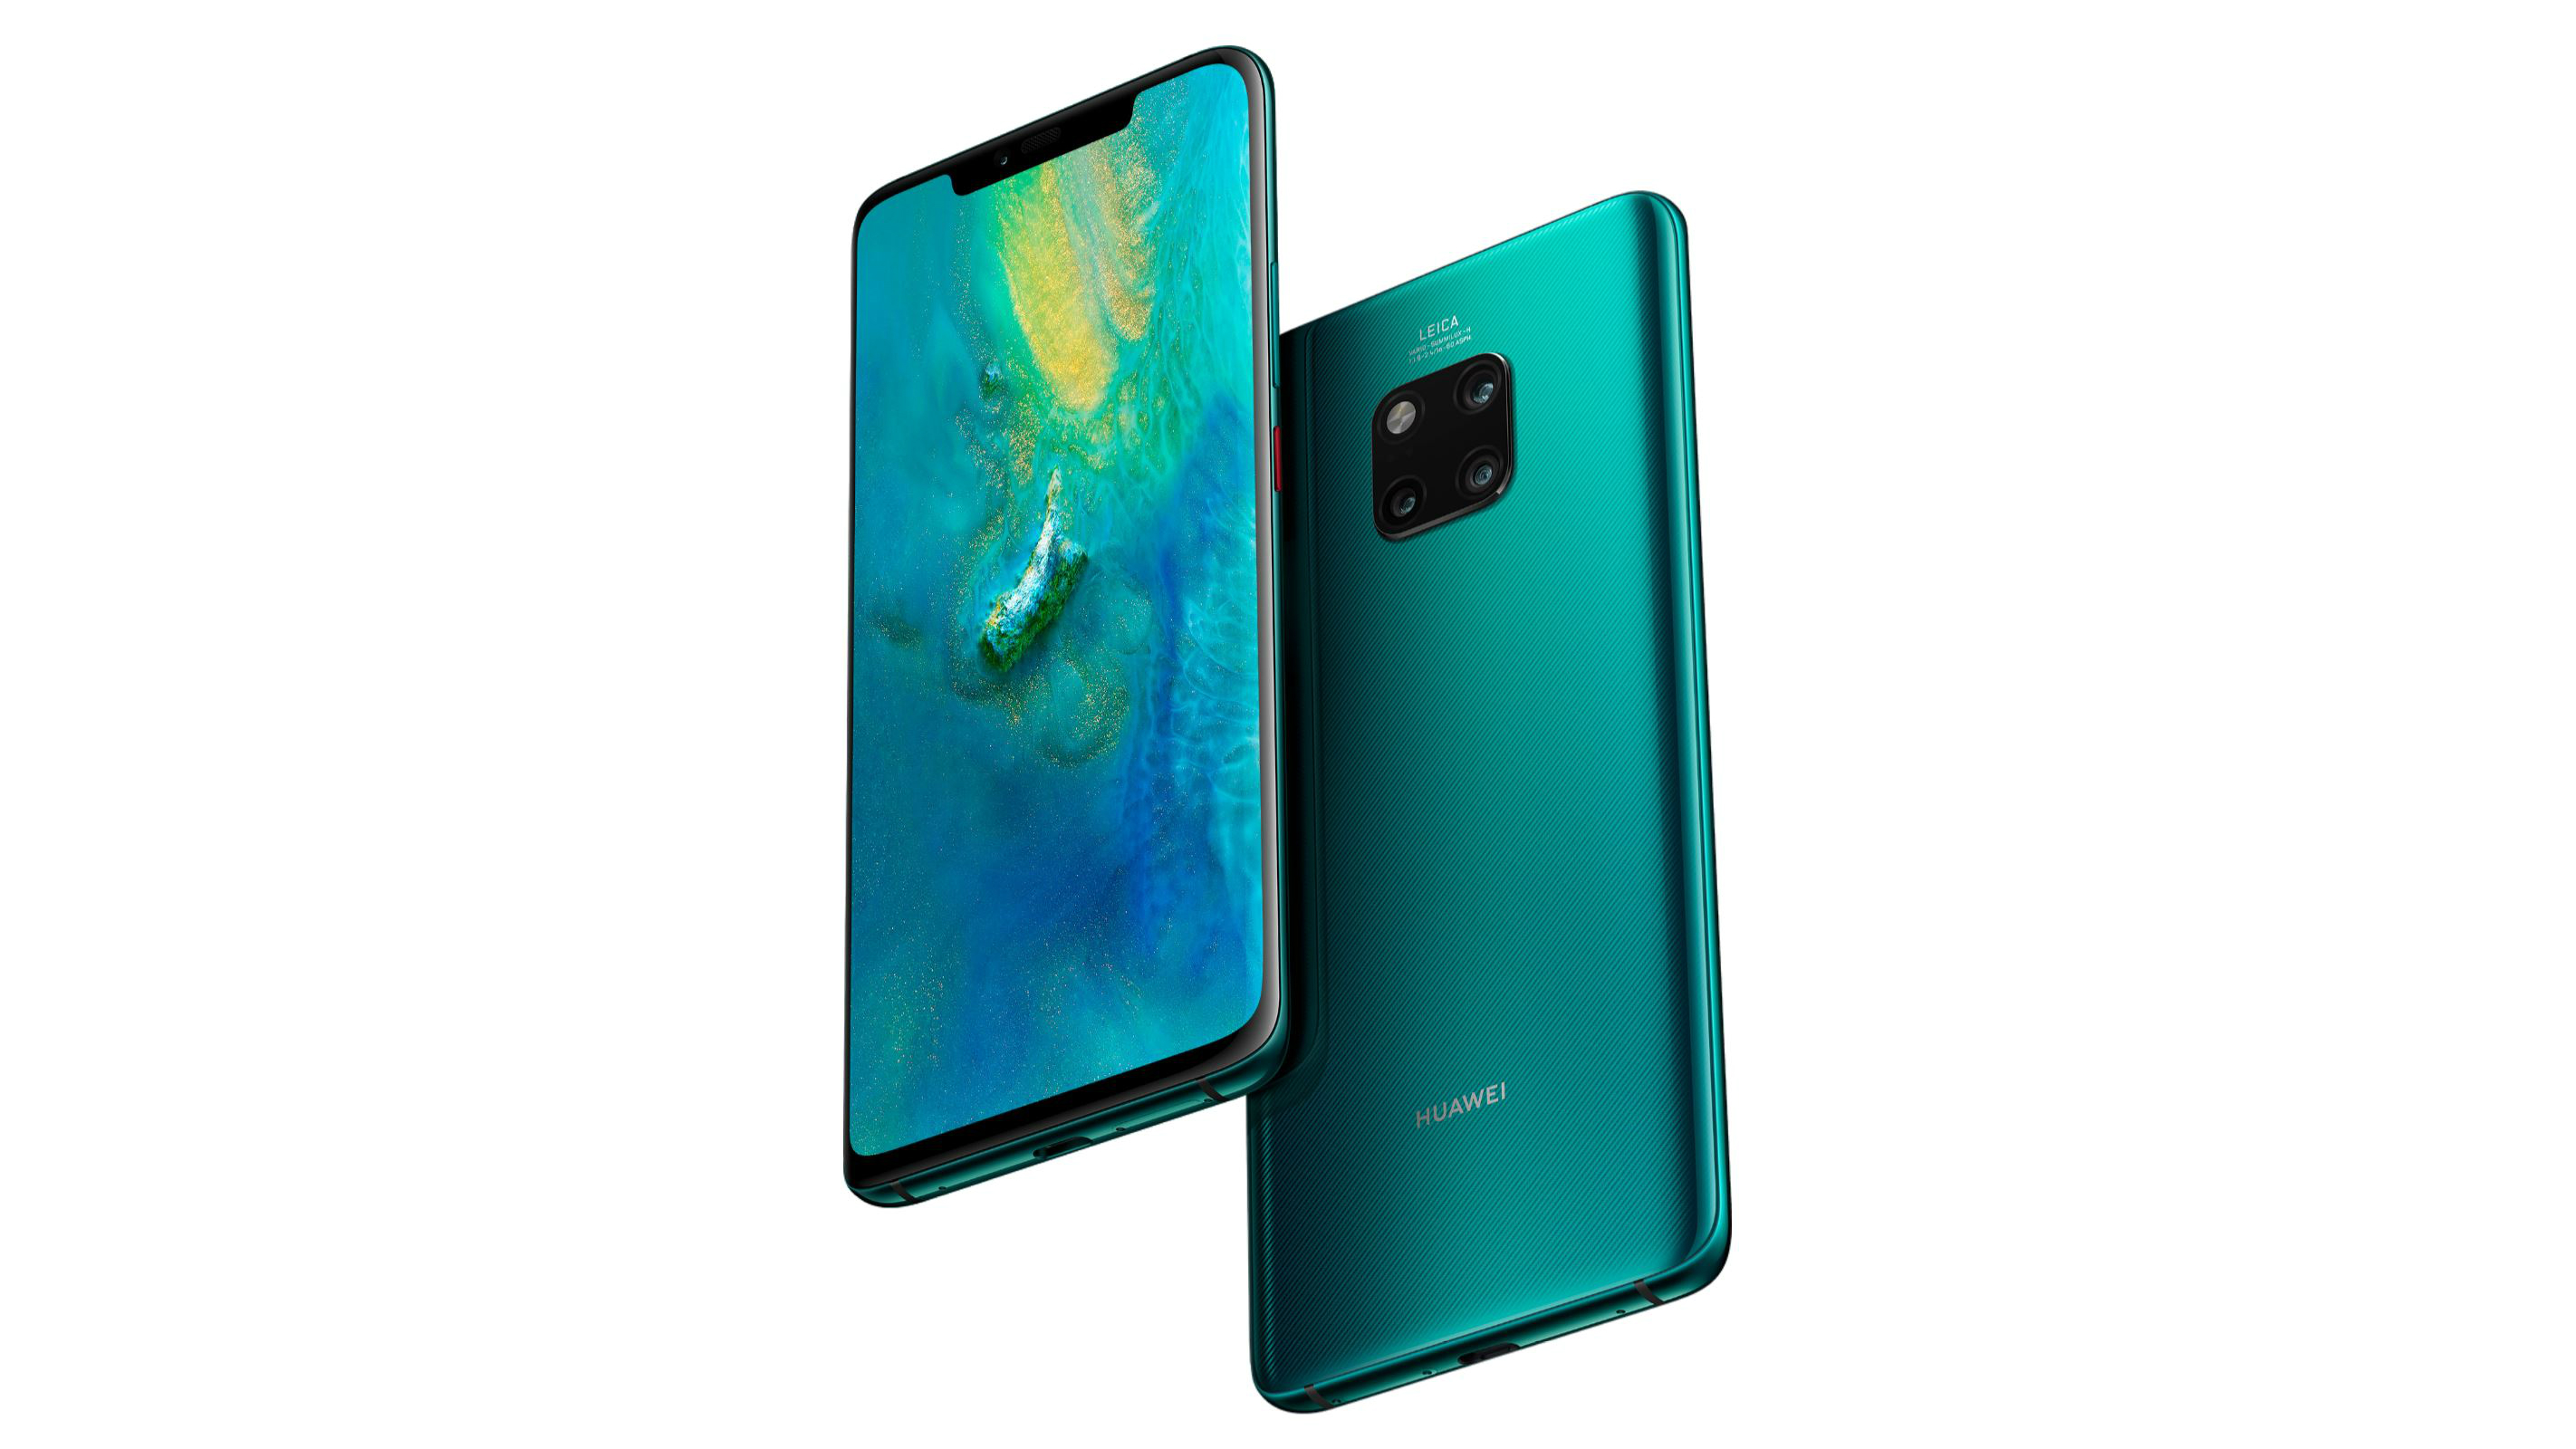 2. Install a monitoring app to locate your Huawei P30/P30 Pro